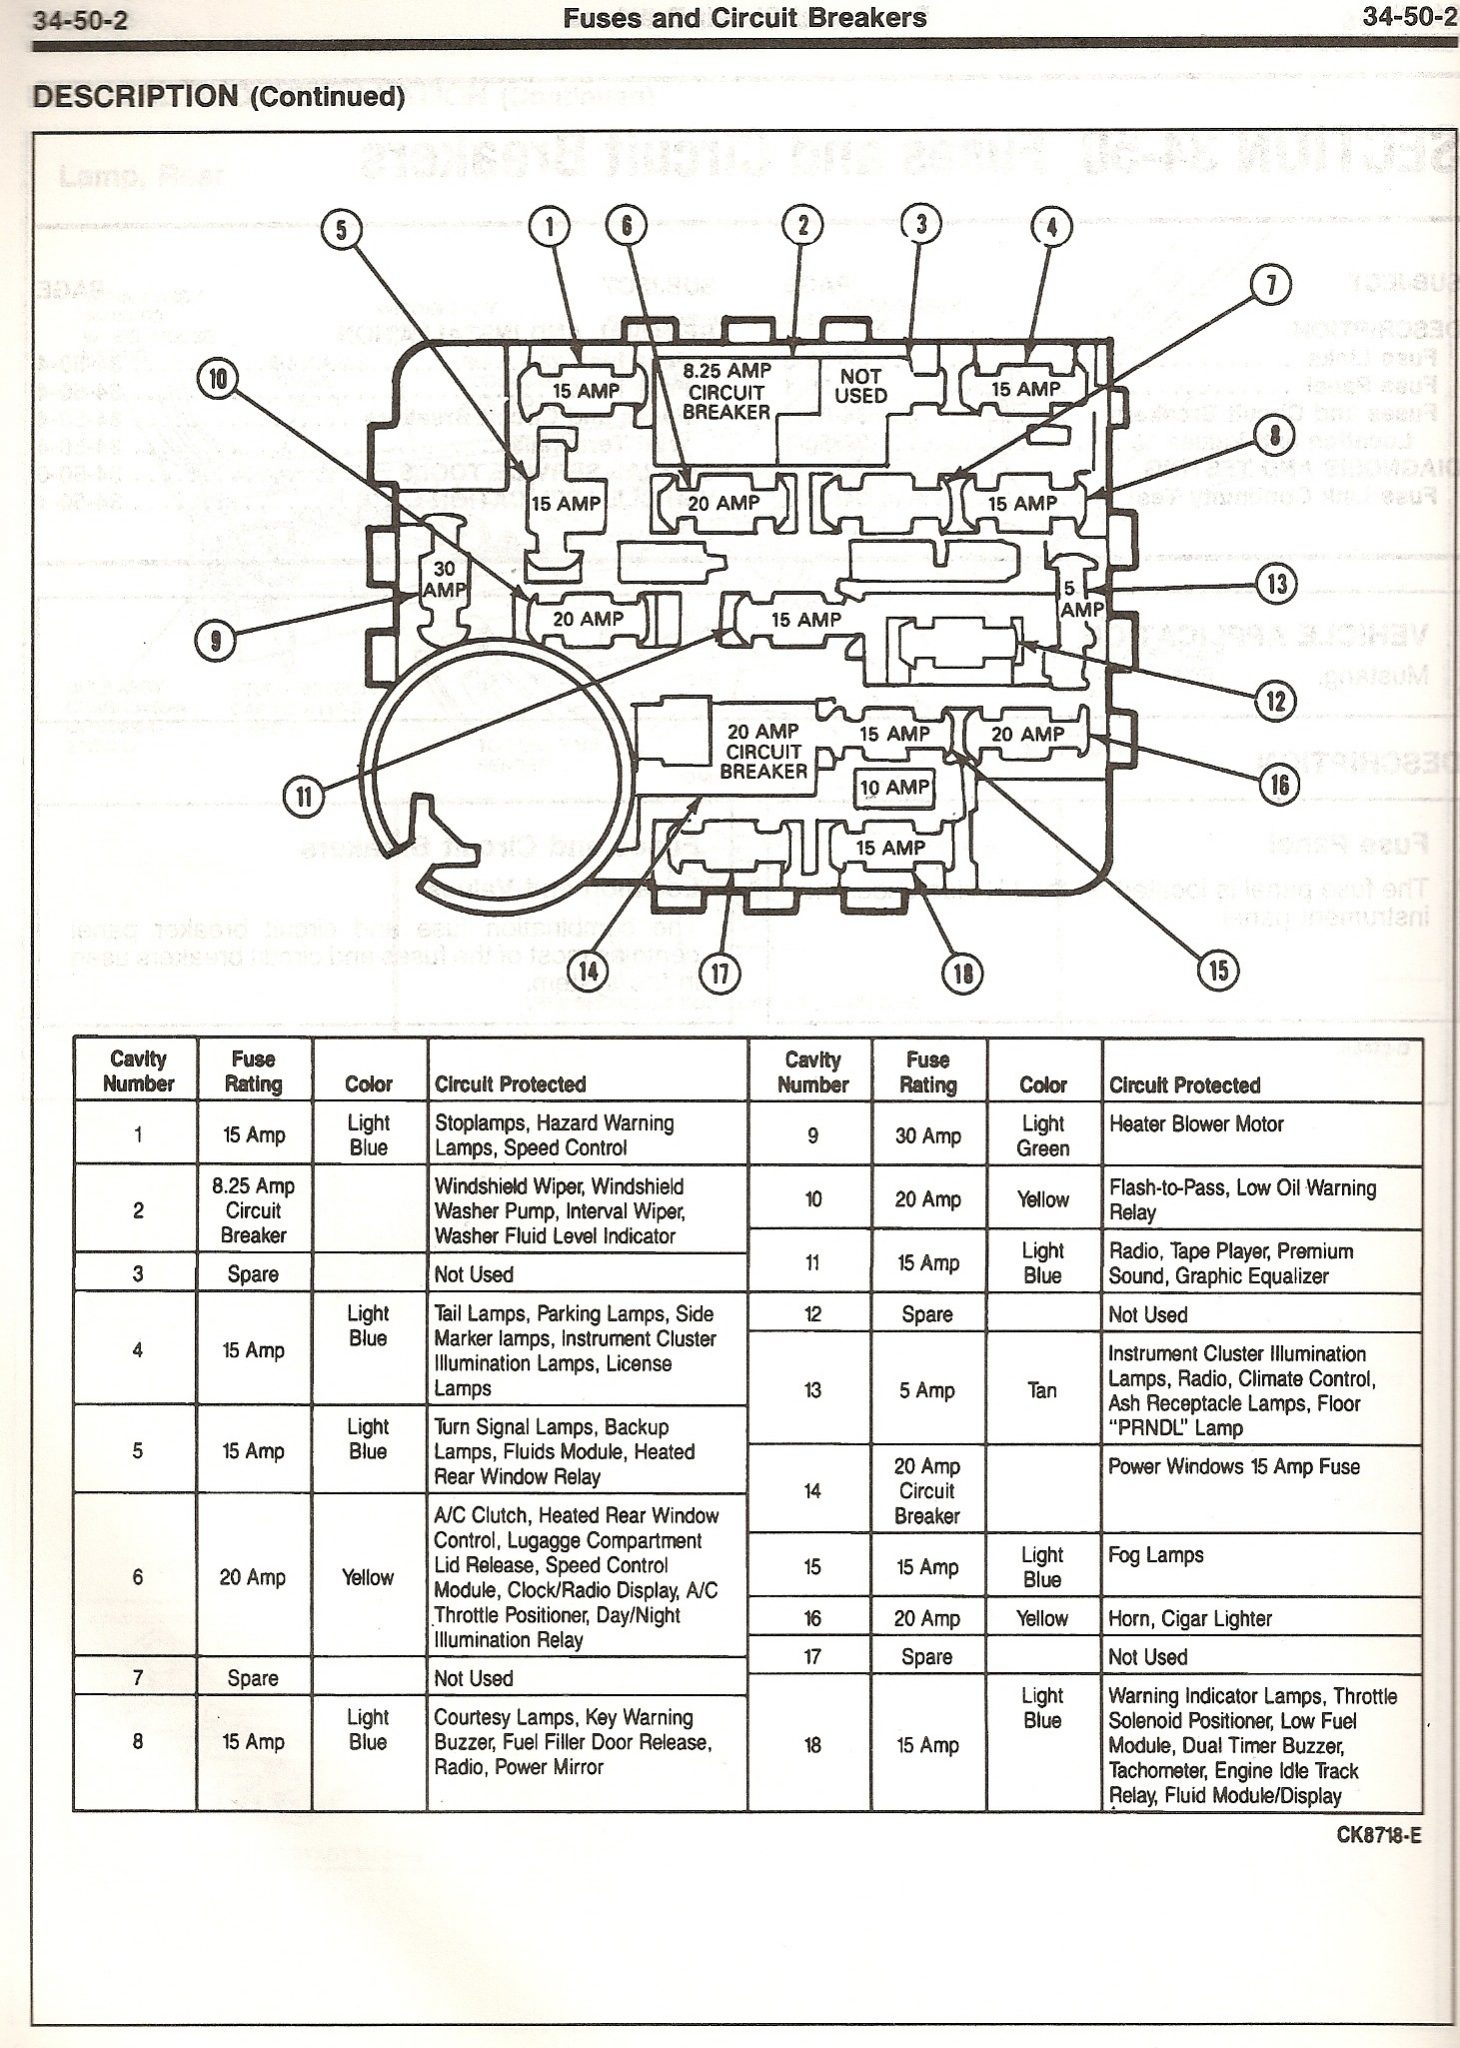 93 crown victoria fuse box simple wiring schema 2007 crown victoria fuse box diagram 1990 crown victoria fuse box diagram [ 1460 x 2048 Pixel ]